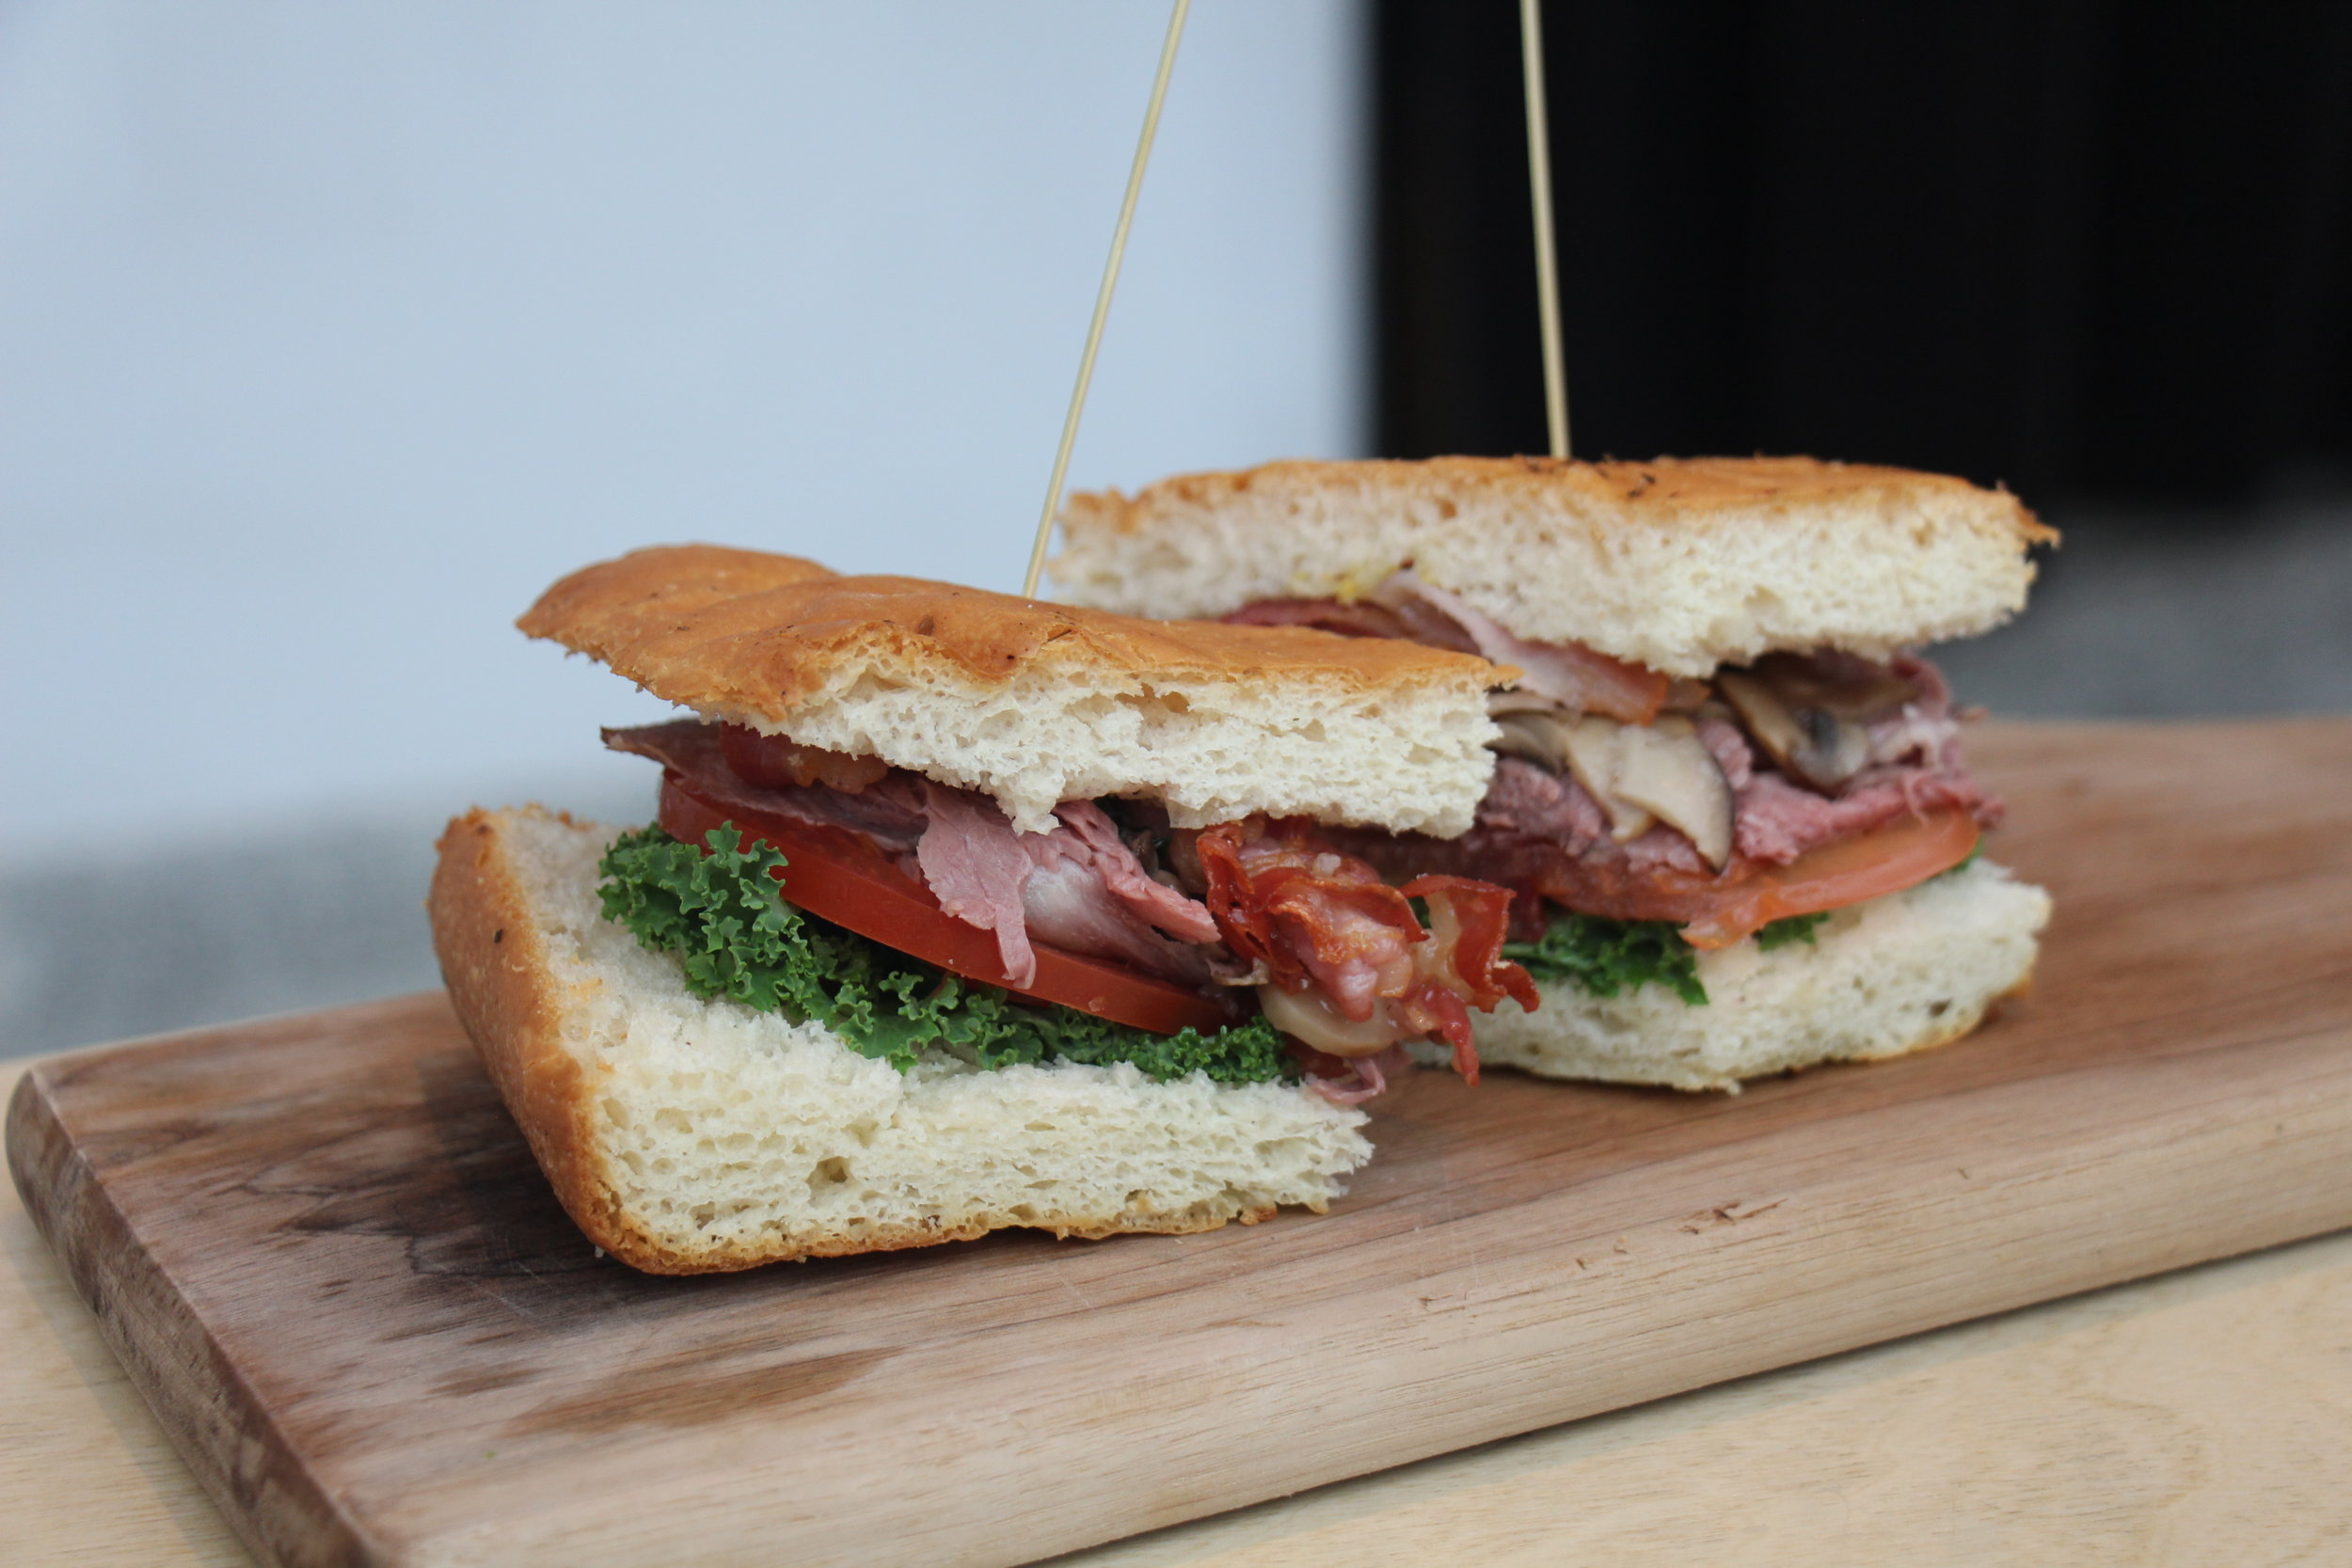 Thinly sliced roast beef served with mushrooms, kale, tomatoes and mustard sandwiched between two slices of crispy pancetta bread; highly recommended.